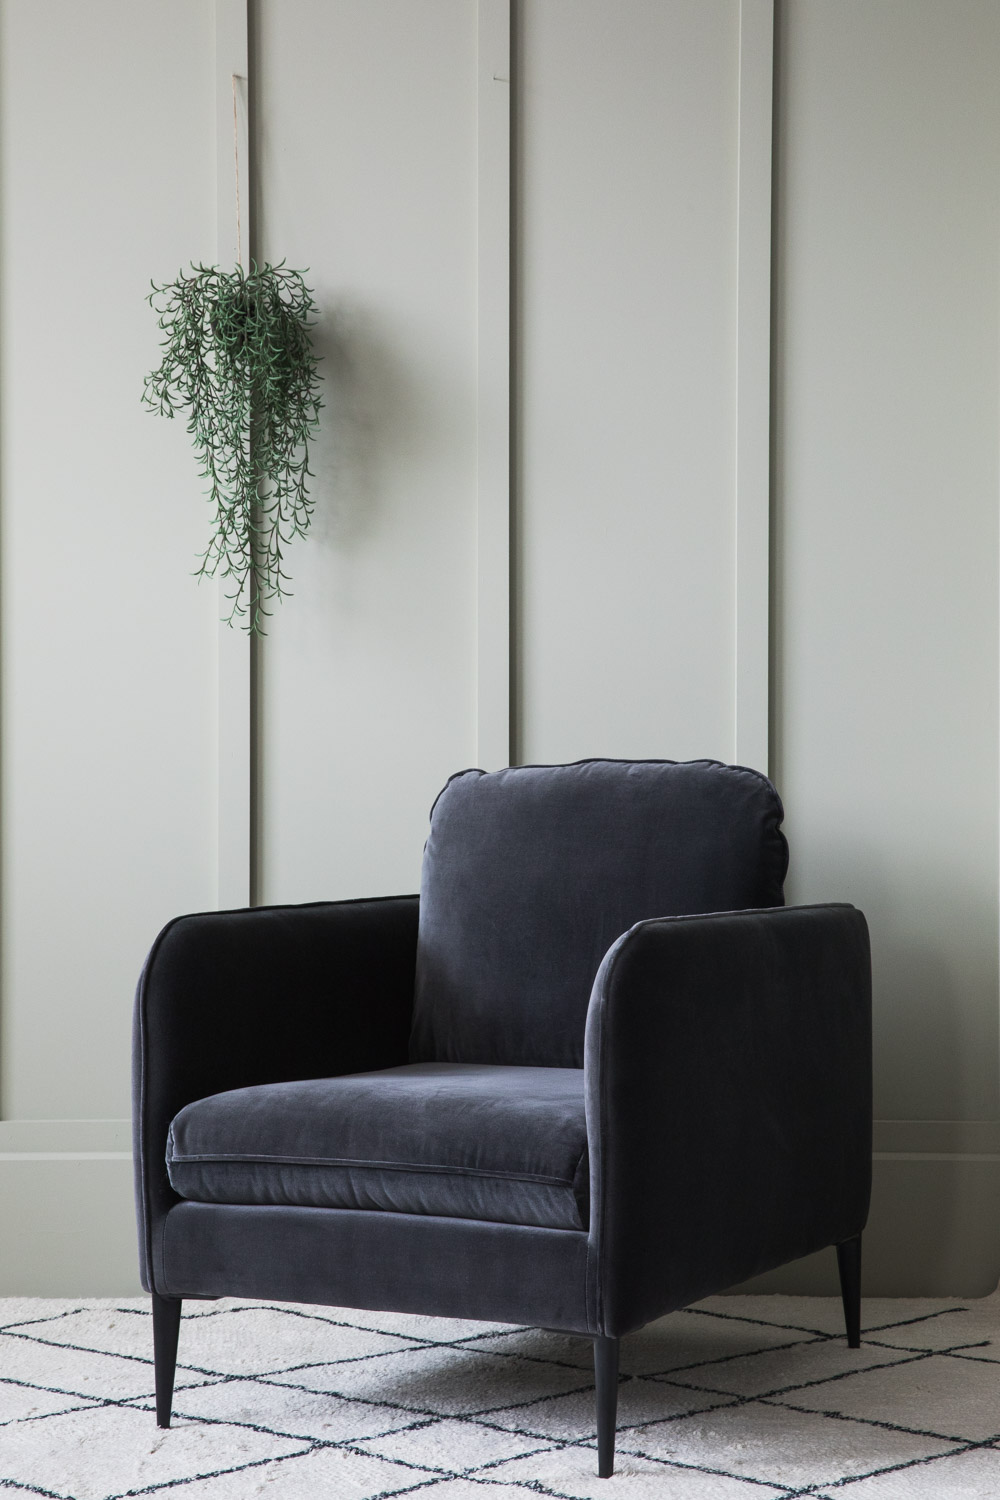 Broughton Armchair 2 copy.jpg